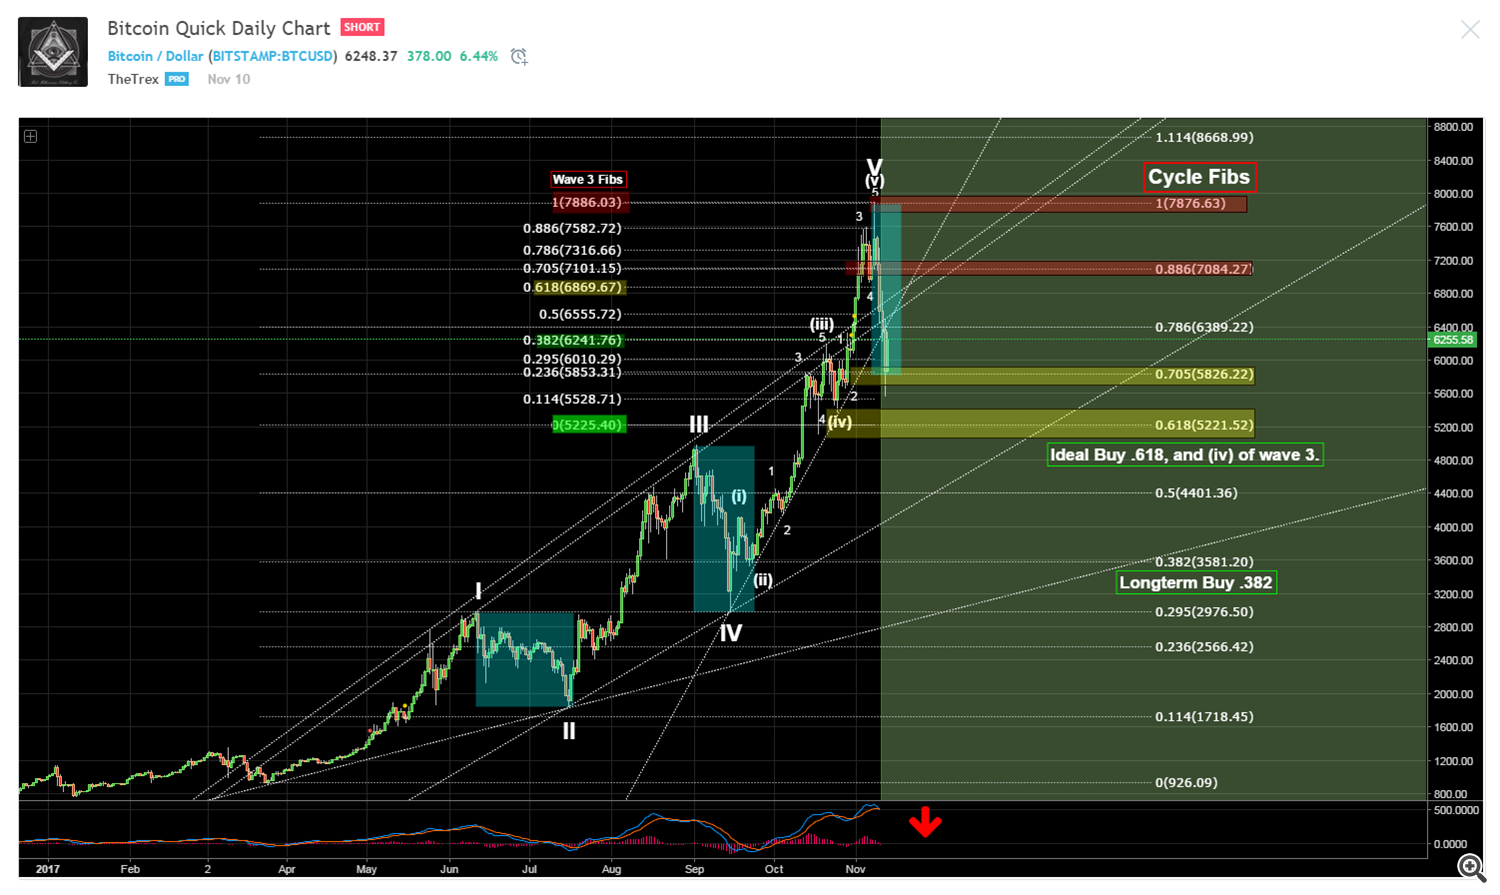 Bitcoin Quick Daily Chart